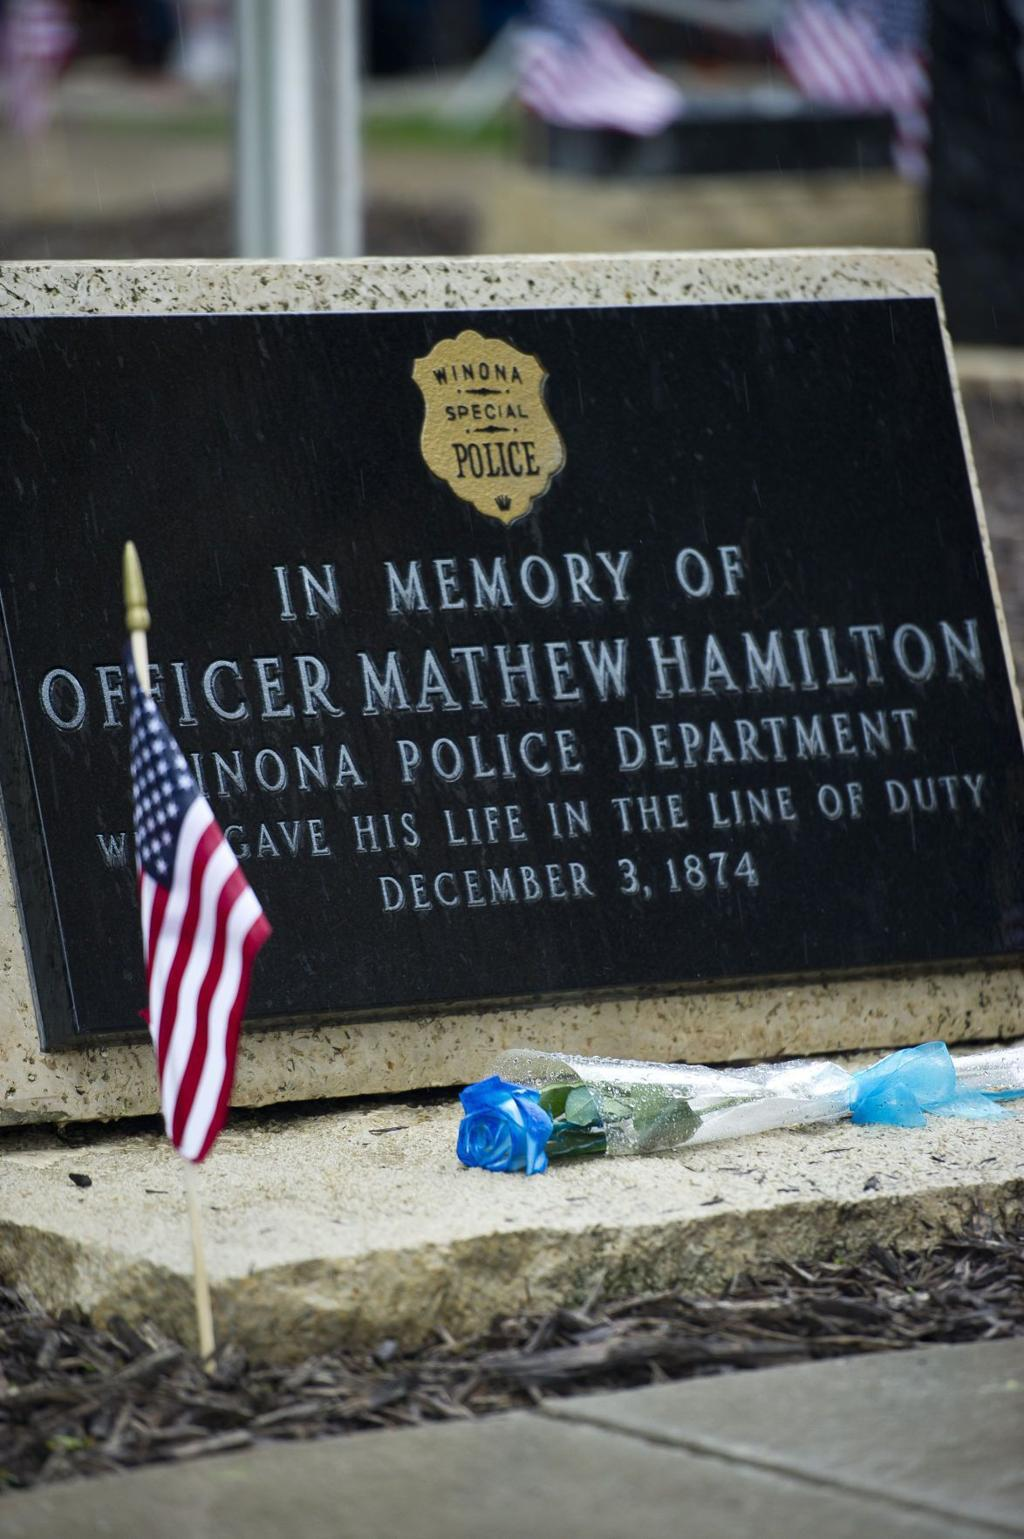 They were our shields': Memorial service honors Winona's fallen